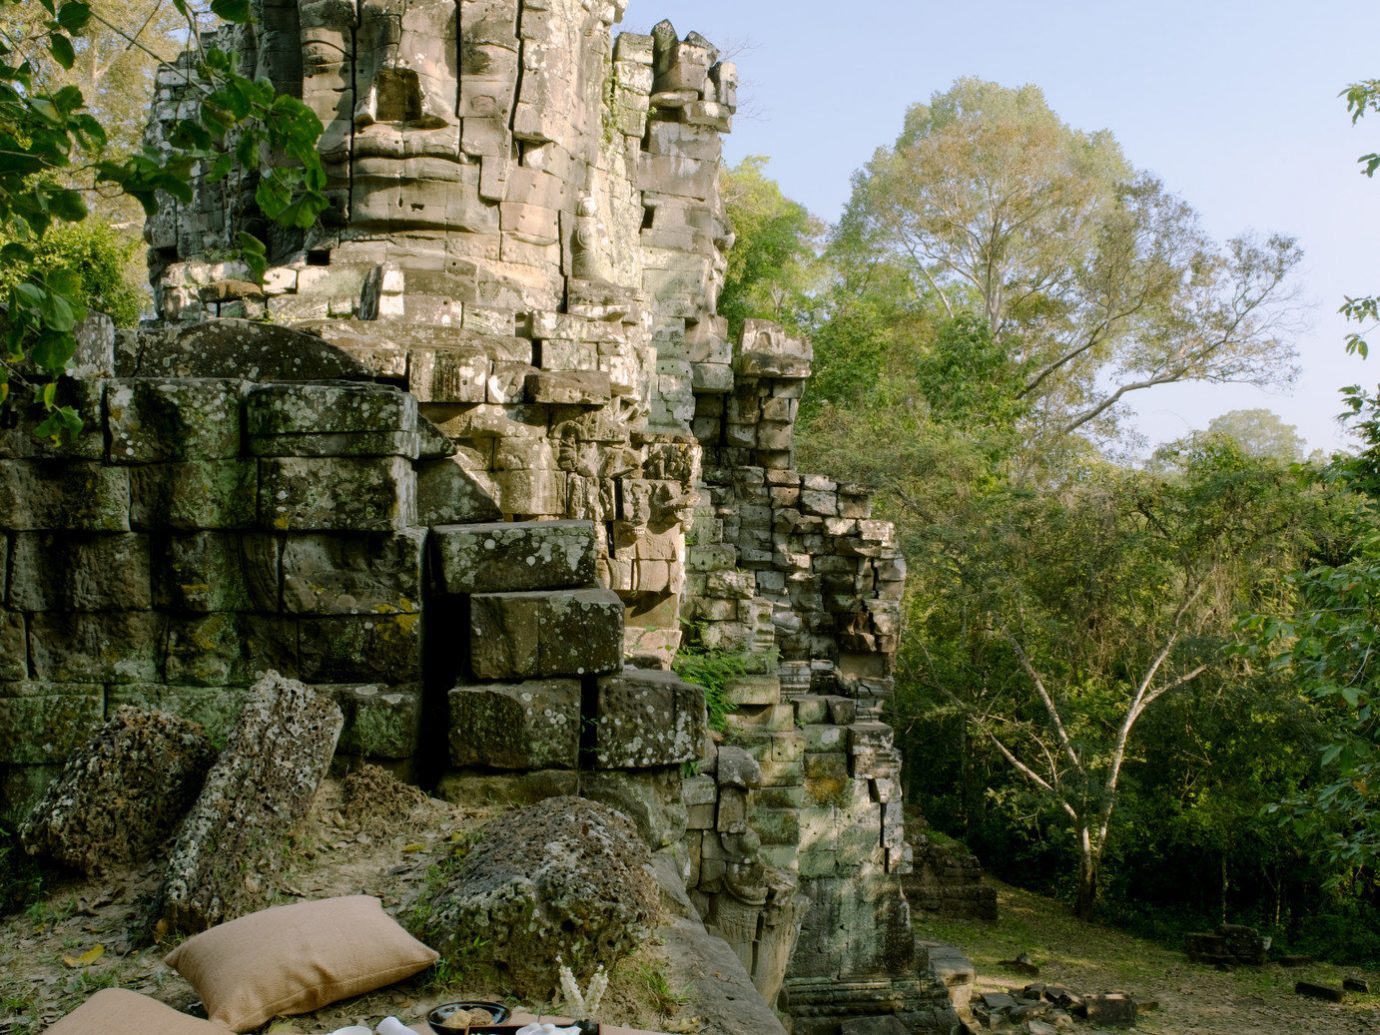 Arts + Culture Budget Landmarks Trip Ideas tree outdoor rock stone archaeological site Ruins ancient history place of worship temple Jungle terrain old